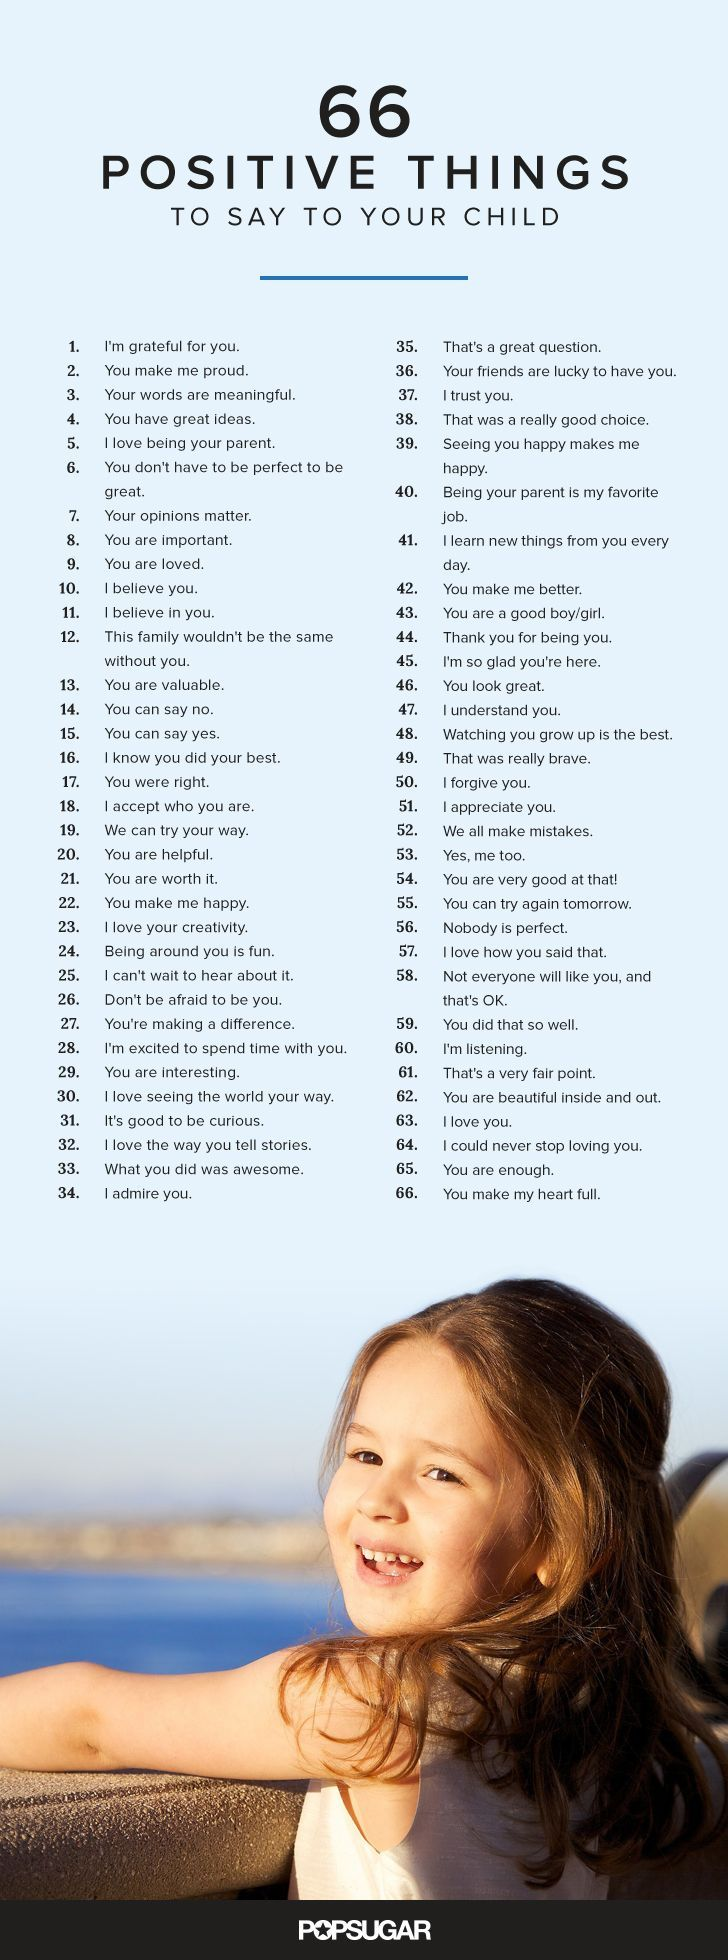 Whether you want to tell them how great they were at their soccer game, or how much you love spending time with them, here are 66 positive and encouraging things to say to your child on a daily basis.